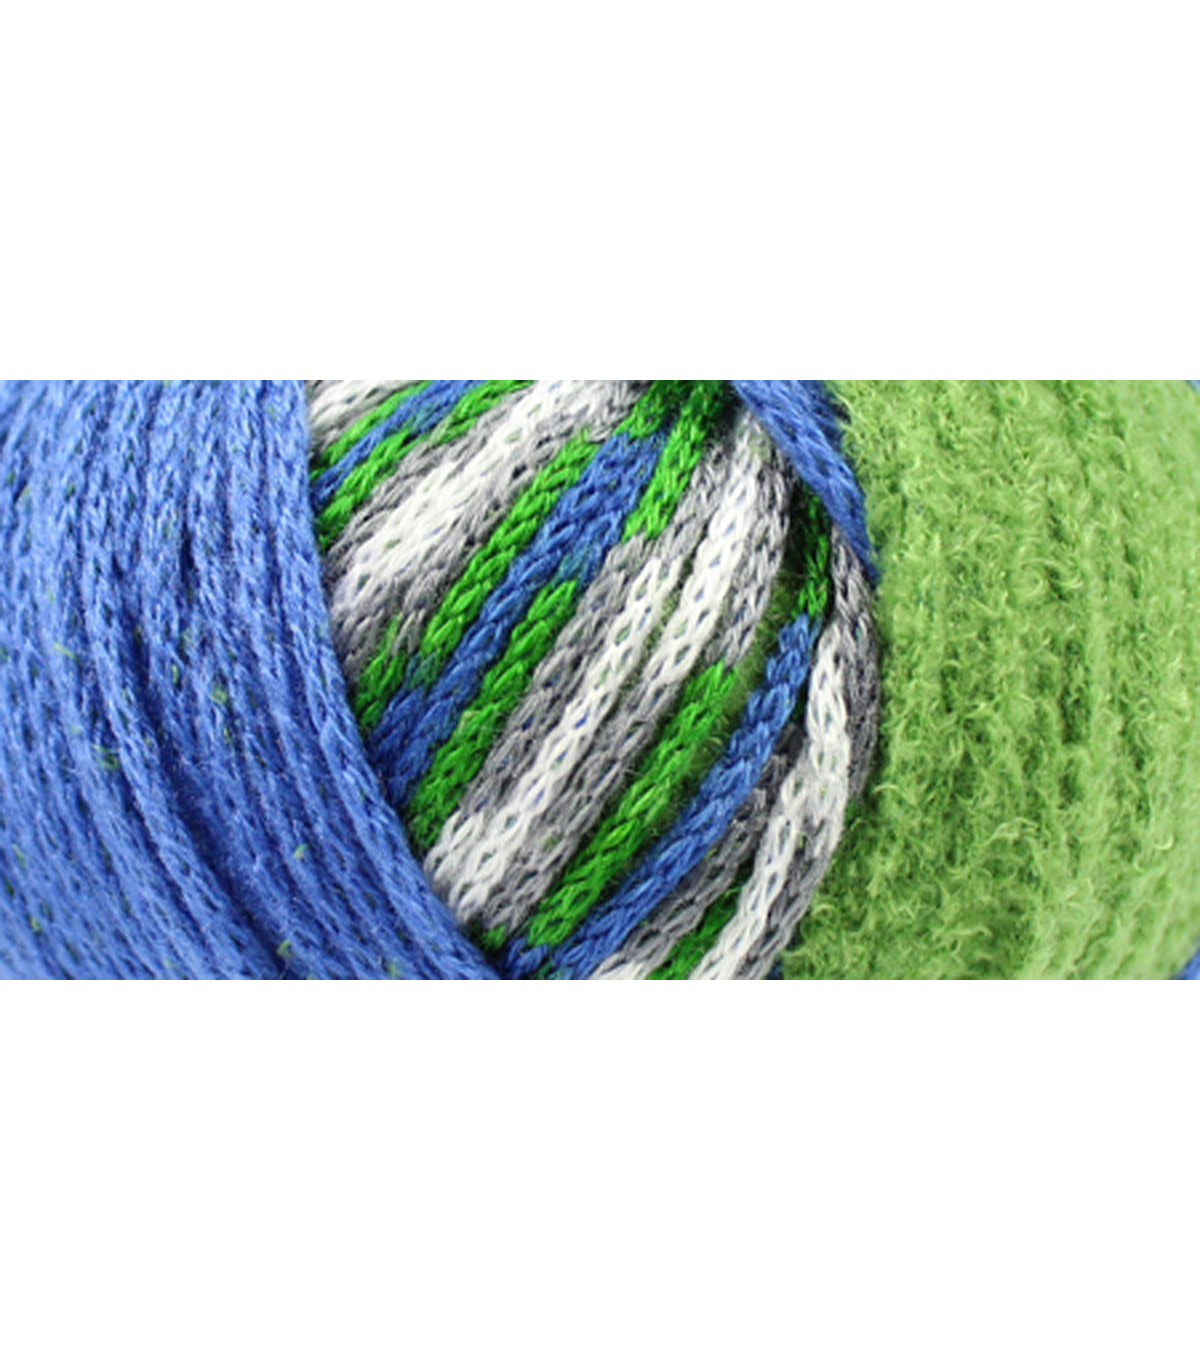 DMC Top This! Team Colors Yarn-Green & Blue